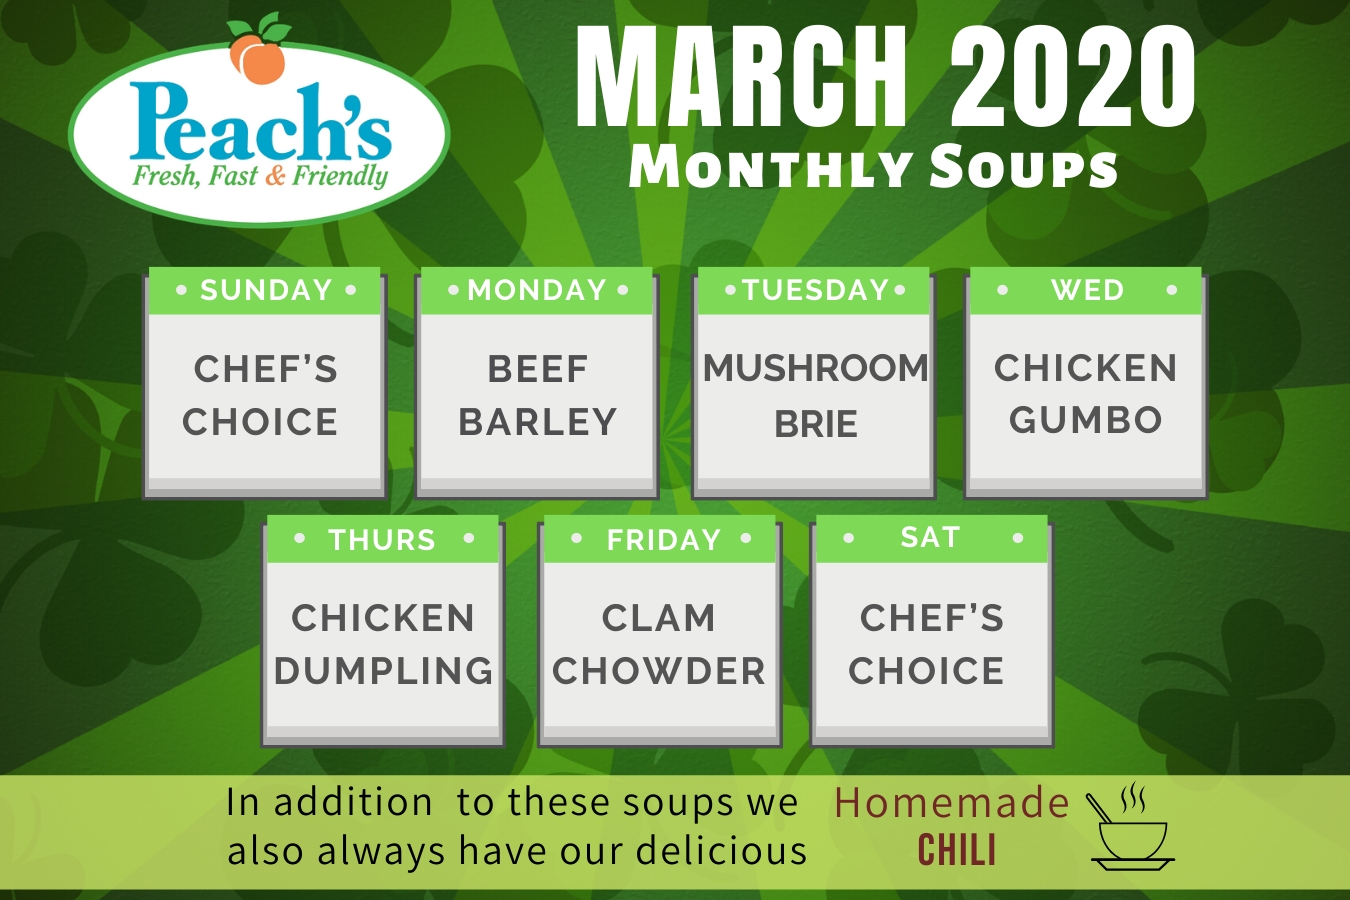 march_monthly_soups.jpg